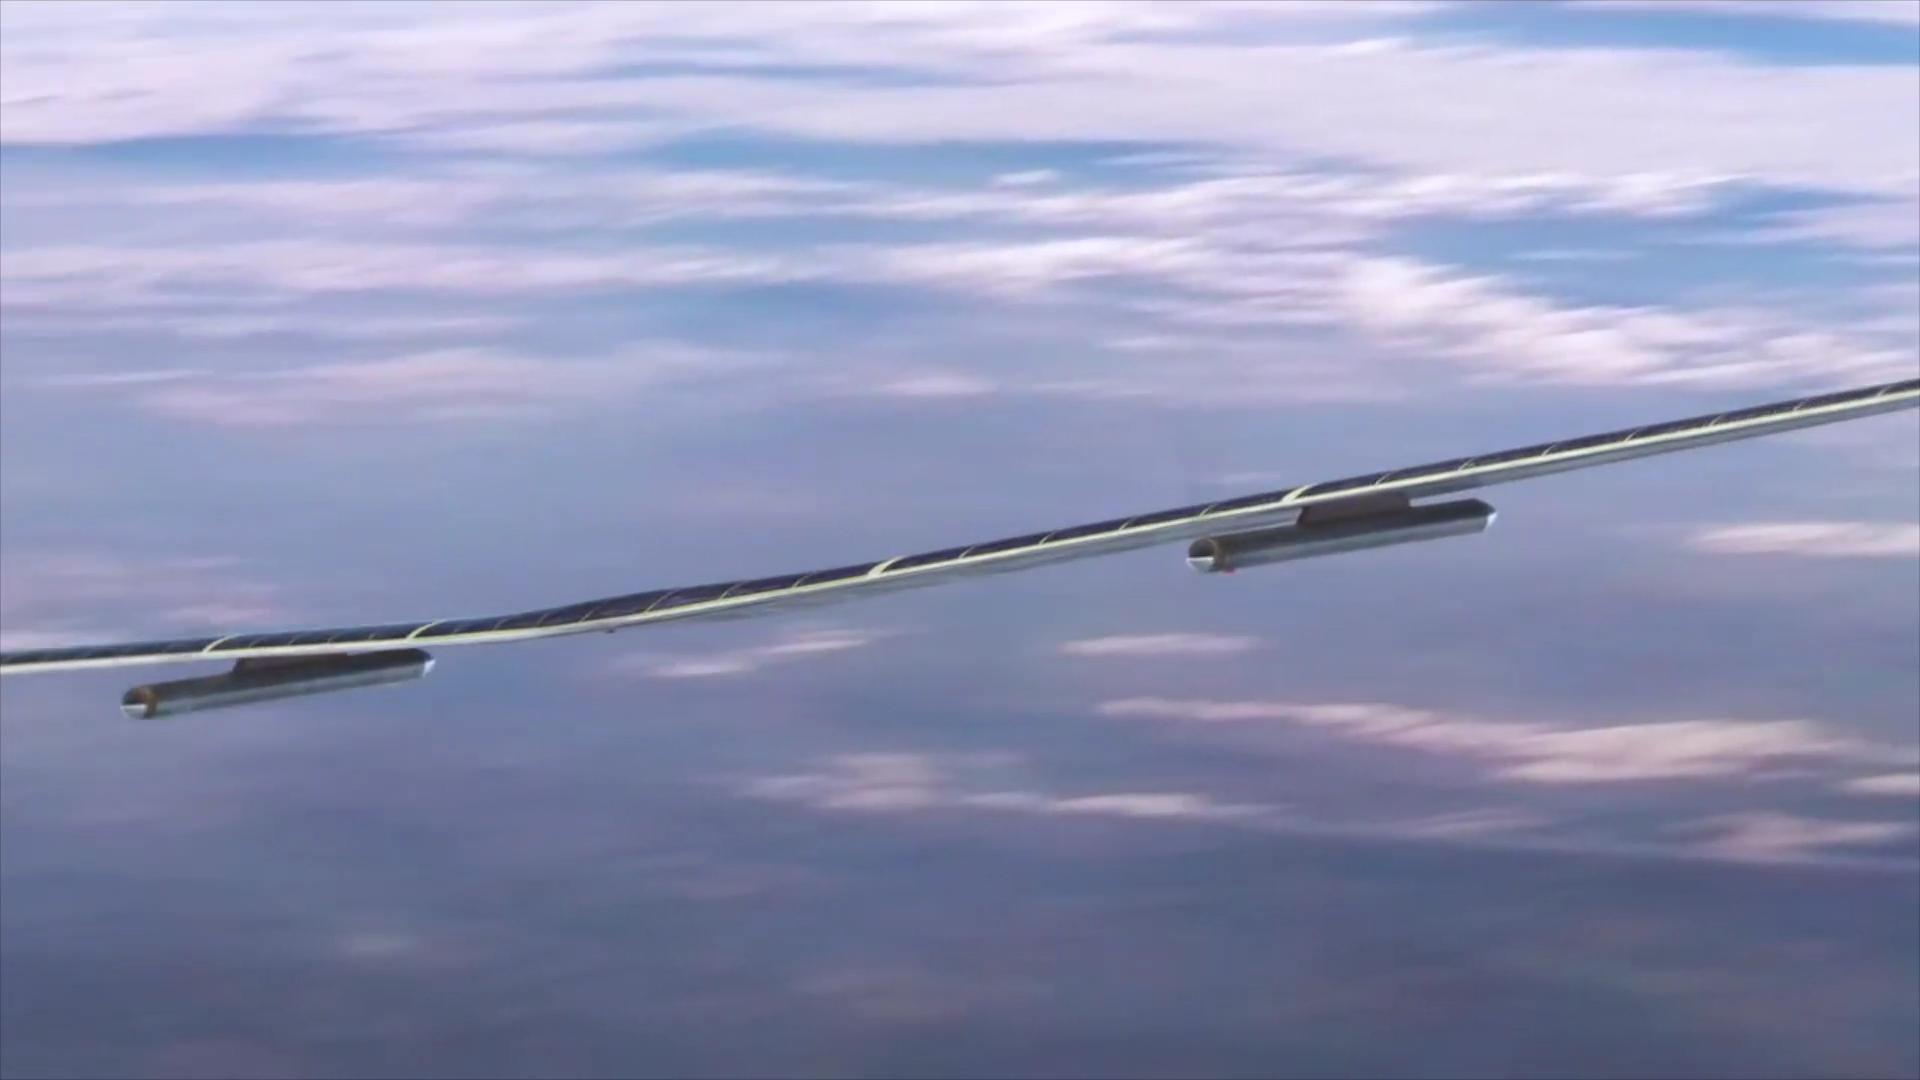 Hoping to fill in the gap for some 4 billion people who lack Internet access, Facebook is launching a solar-powered drone to deliver the web to the entire world. Using high-speed lasers, the plan reads like science fiction but is fast becoming reali